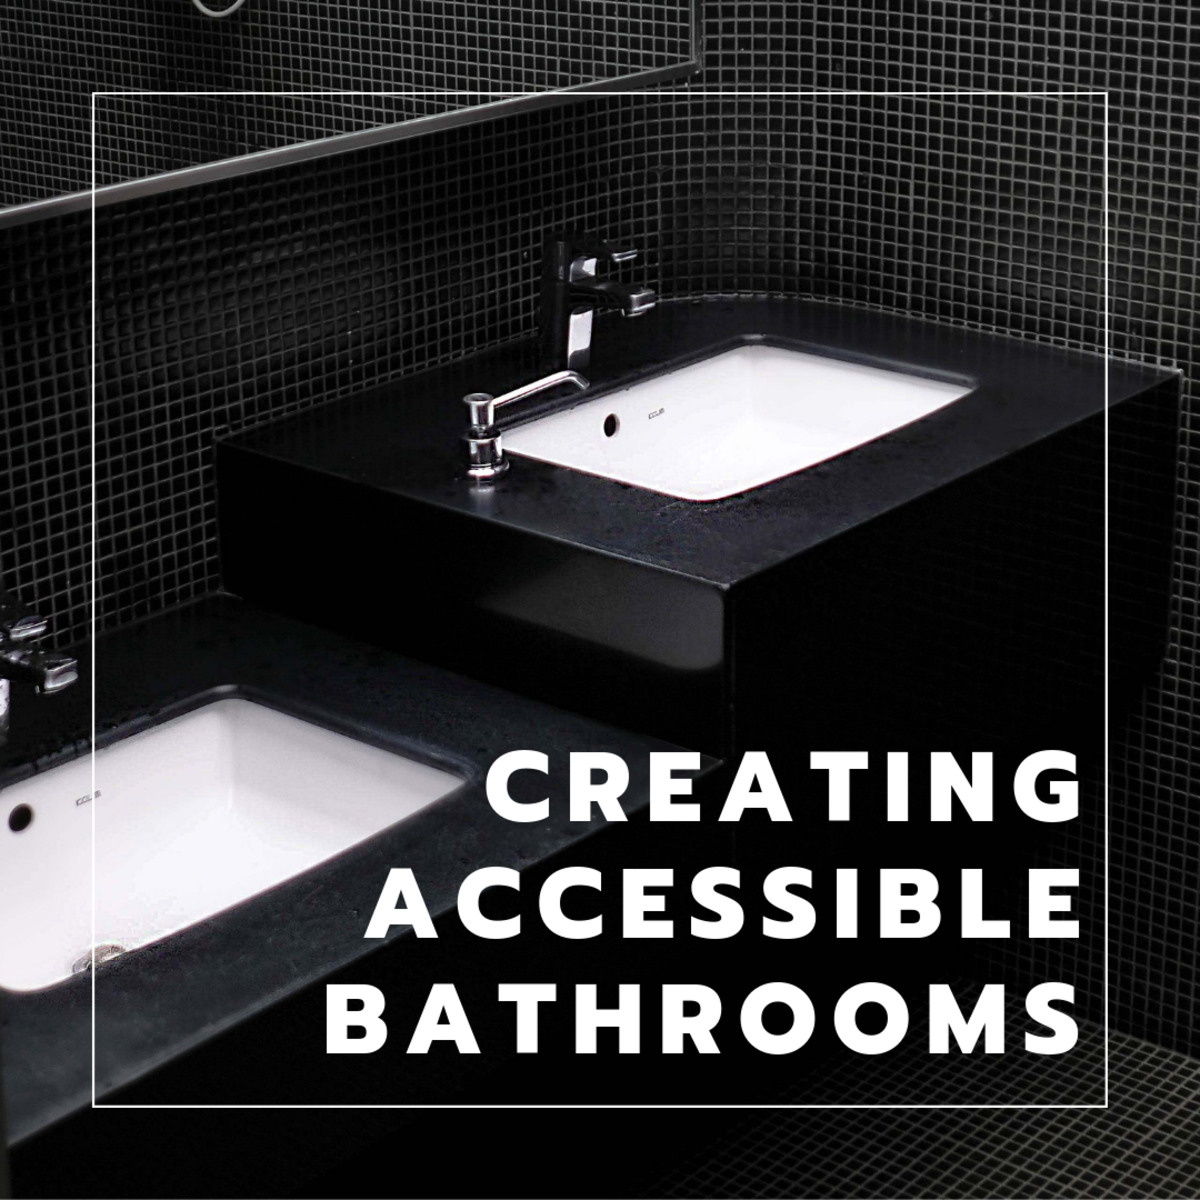 Creating Accessible Bathrooms